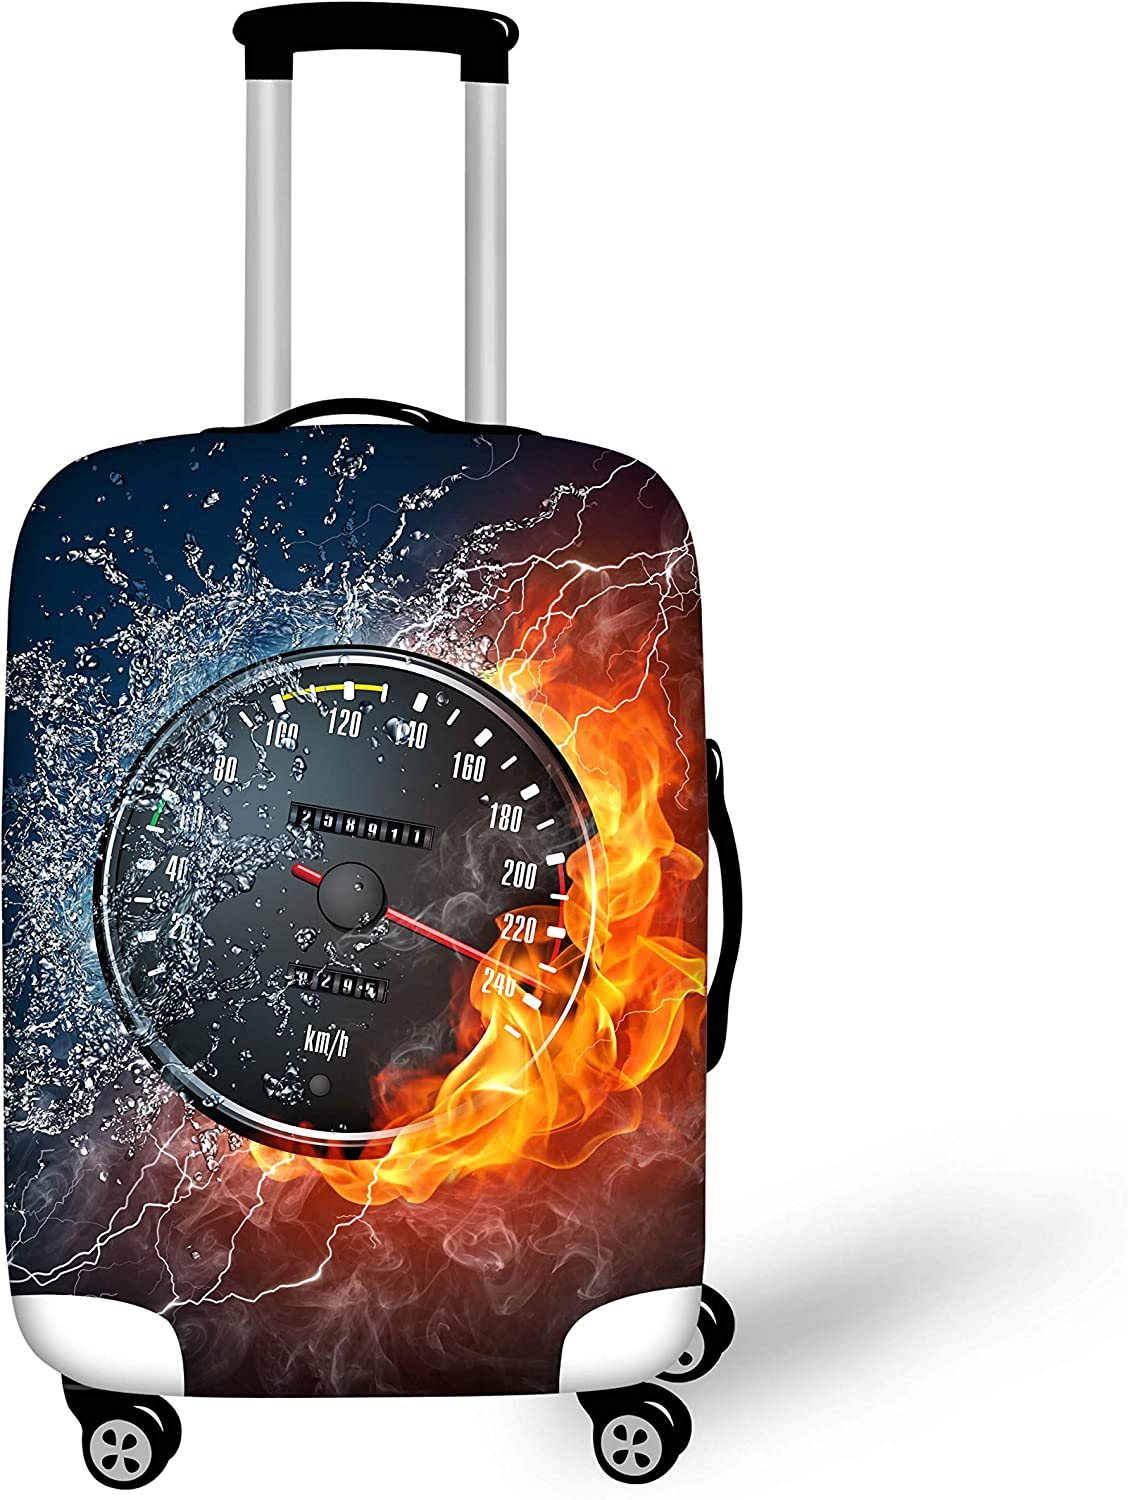 Bigcardesigns Tennis Designs Luggage Cover Boys Men Travel Suitcase Protect Elastic Spandex Covers Size L apply 26-30 Suitcase